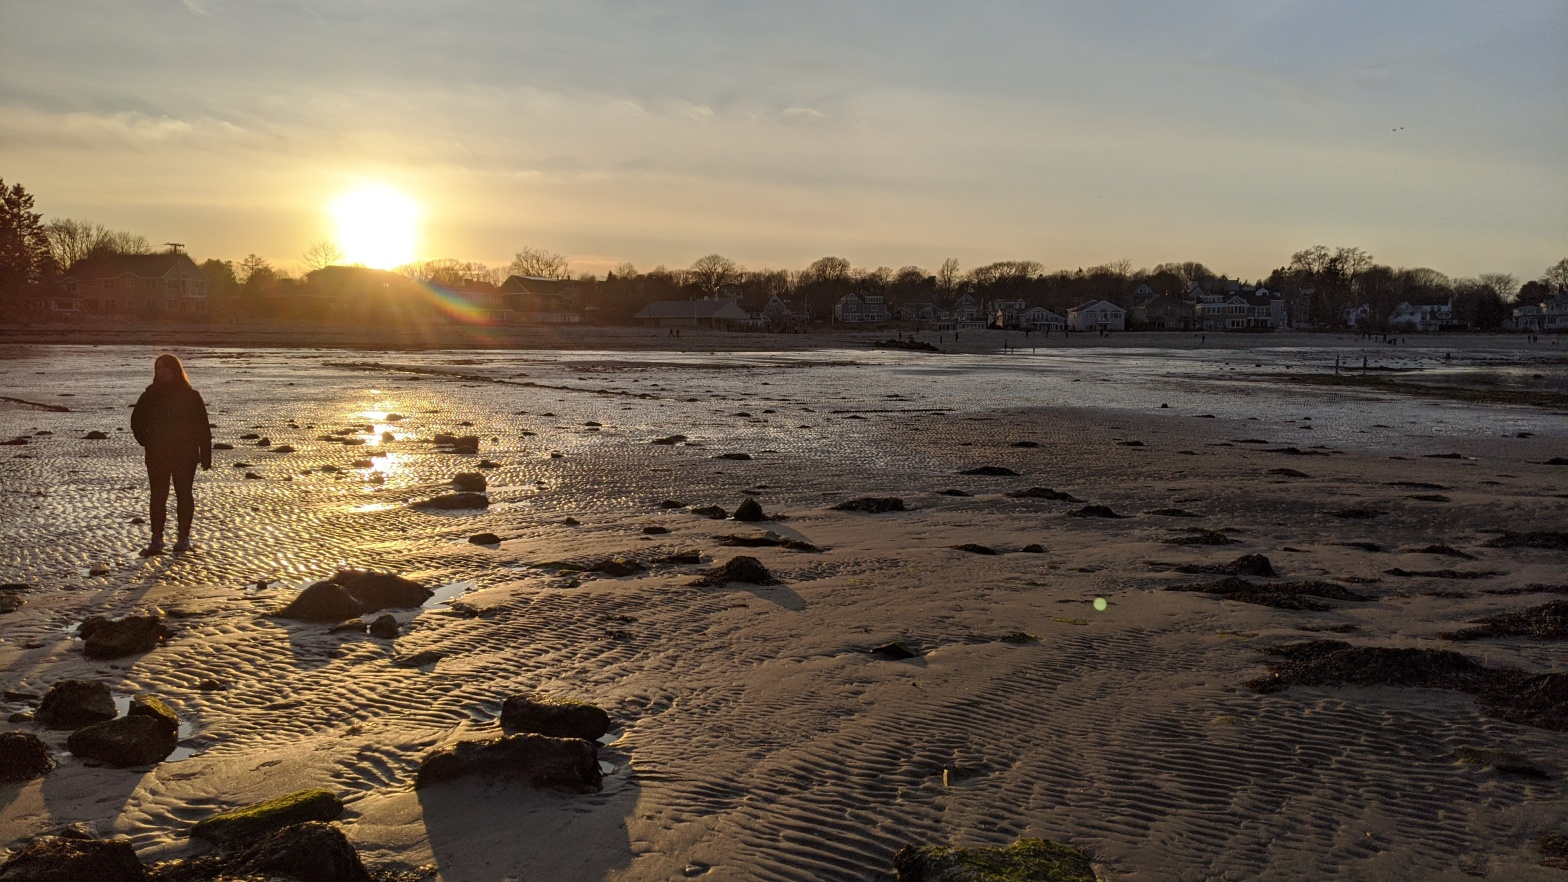 My wife, Stephanie MacDonald, pictured at Willard Beach, South Portland, Maine, on March 9, 2020, during sunset.